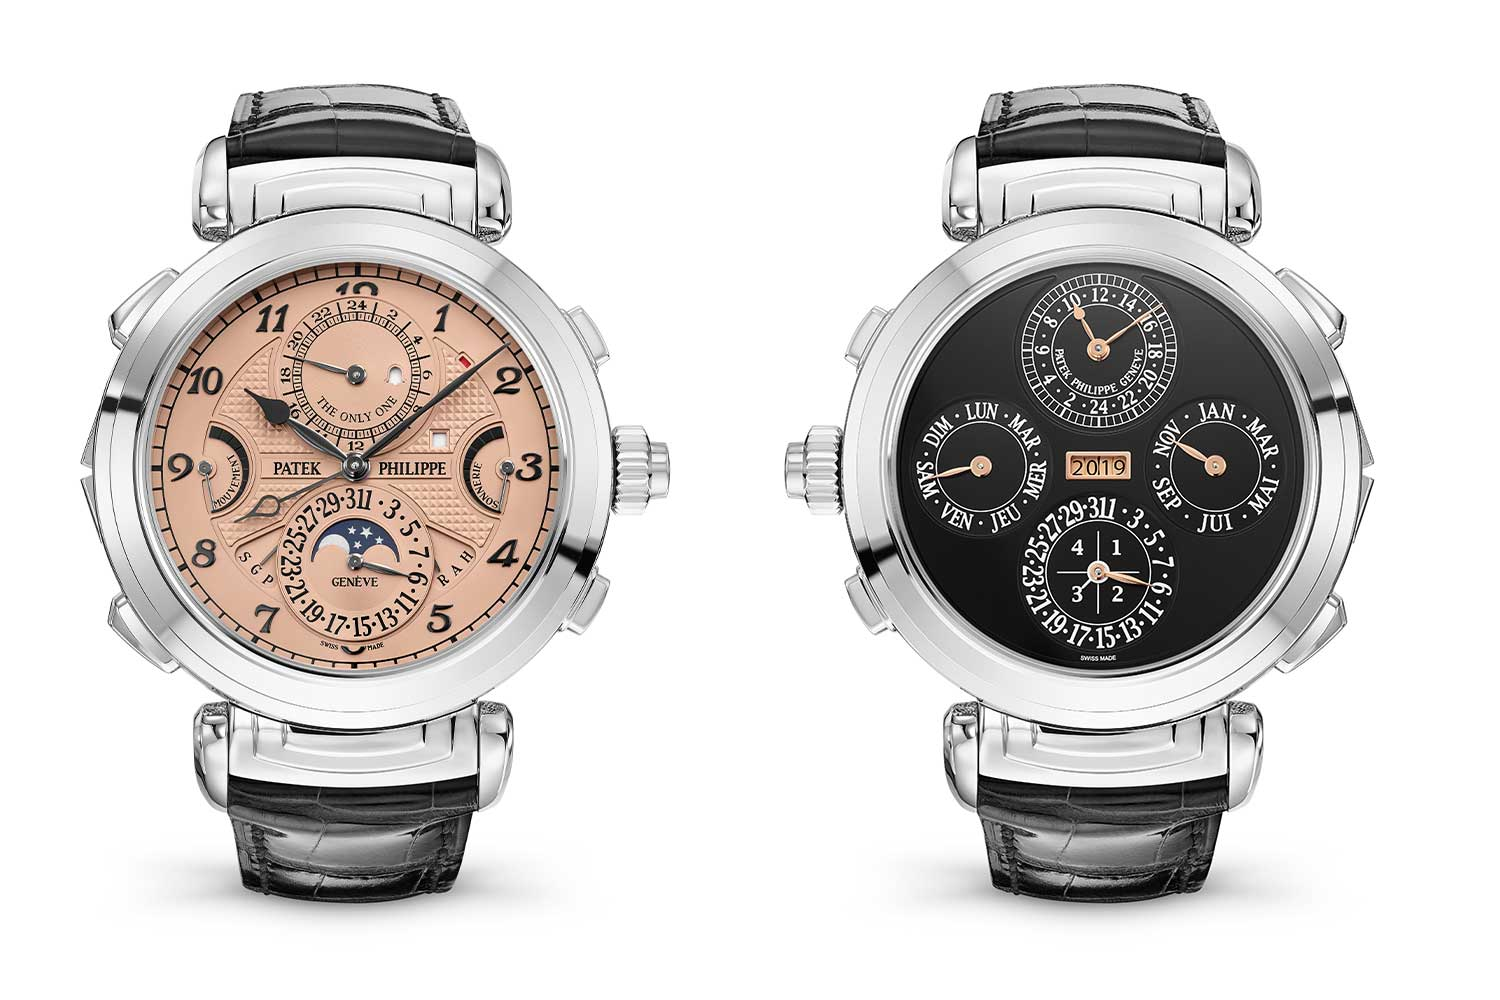 The only Grandmaster Chime in steel was sold for CHF 31 million at Only Watch 2019, fetching the highest price at the auction, becoming the most expensive watch in the world